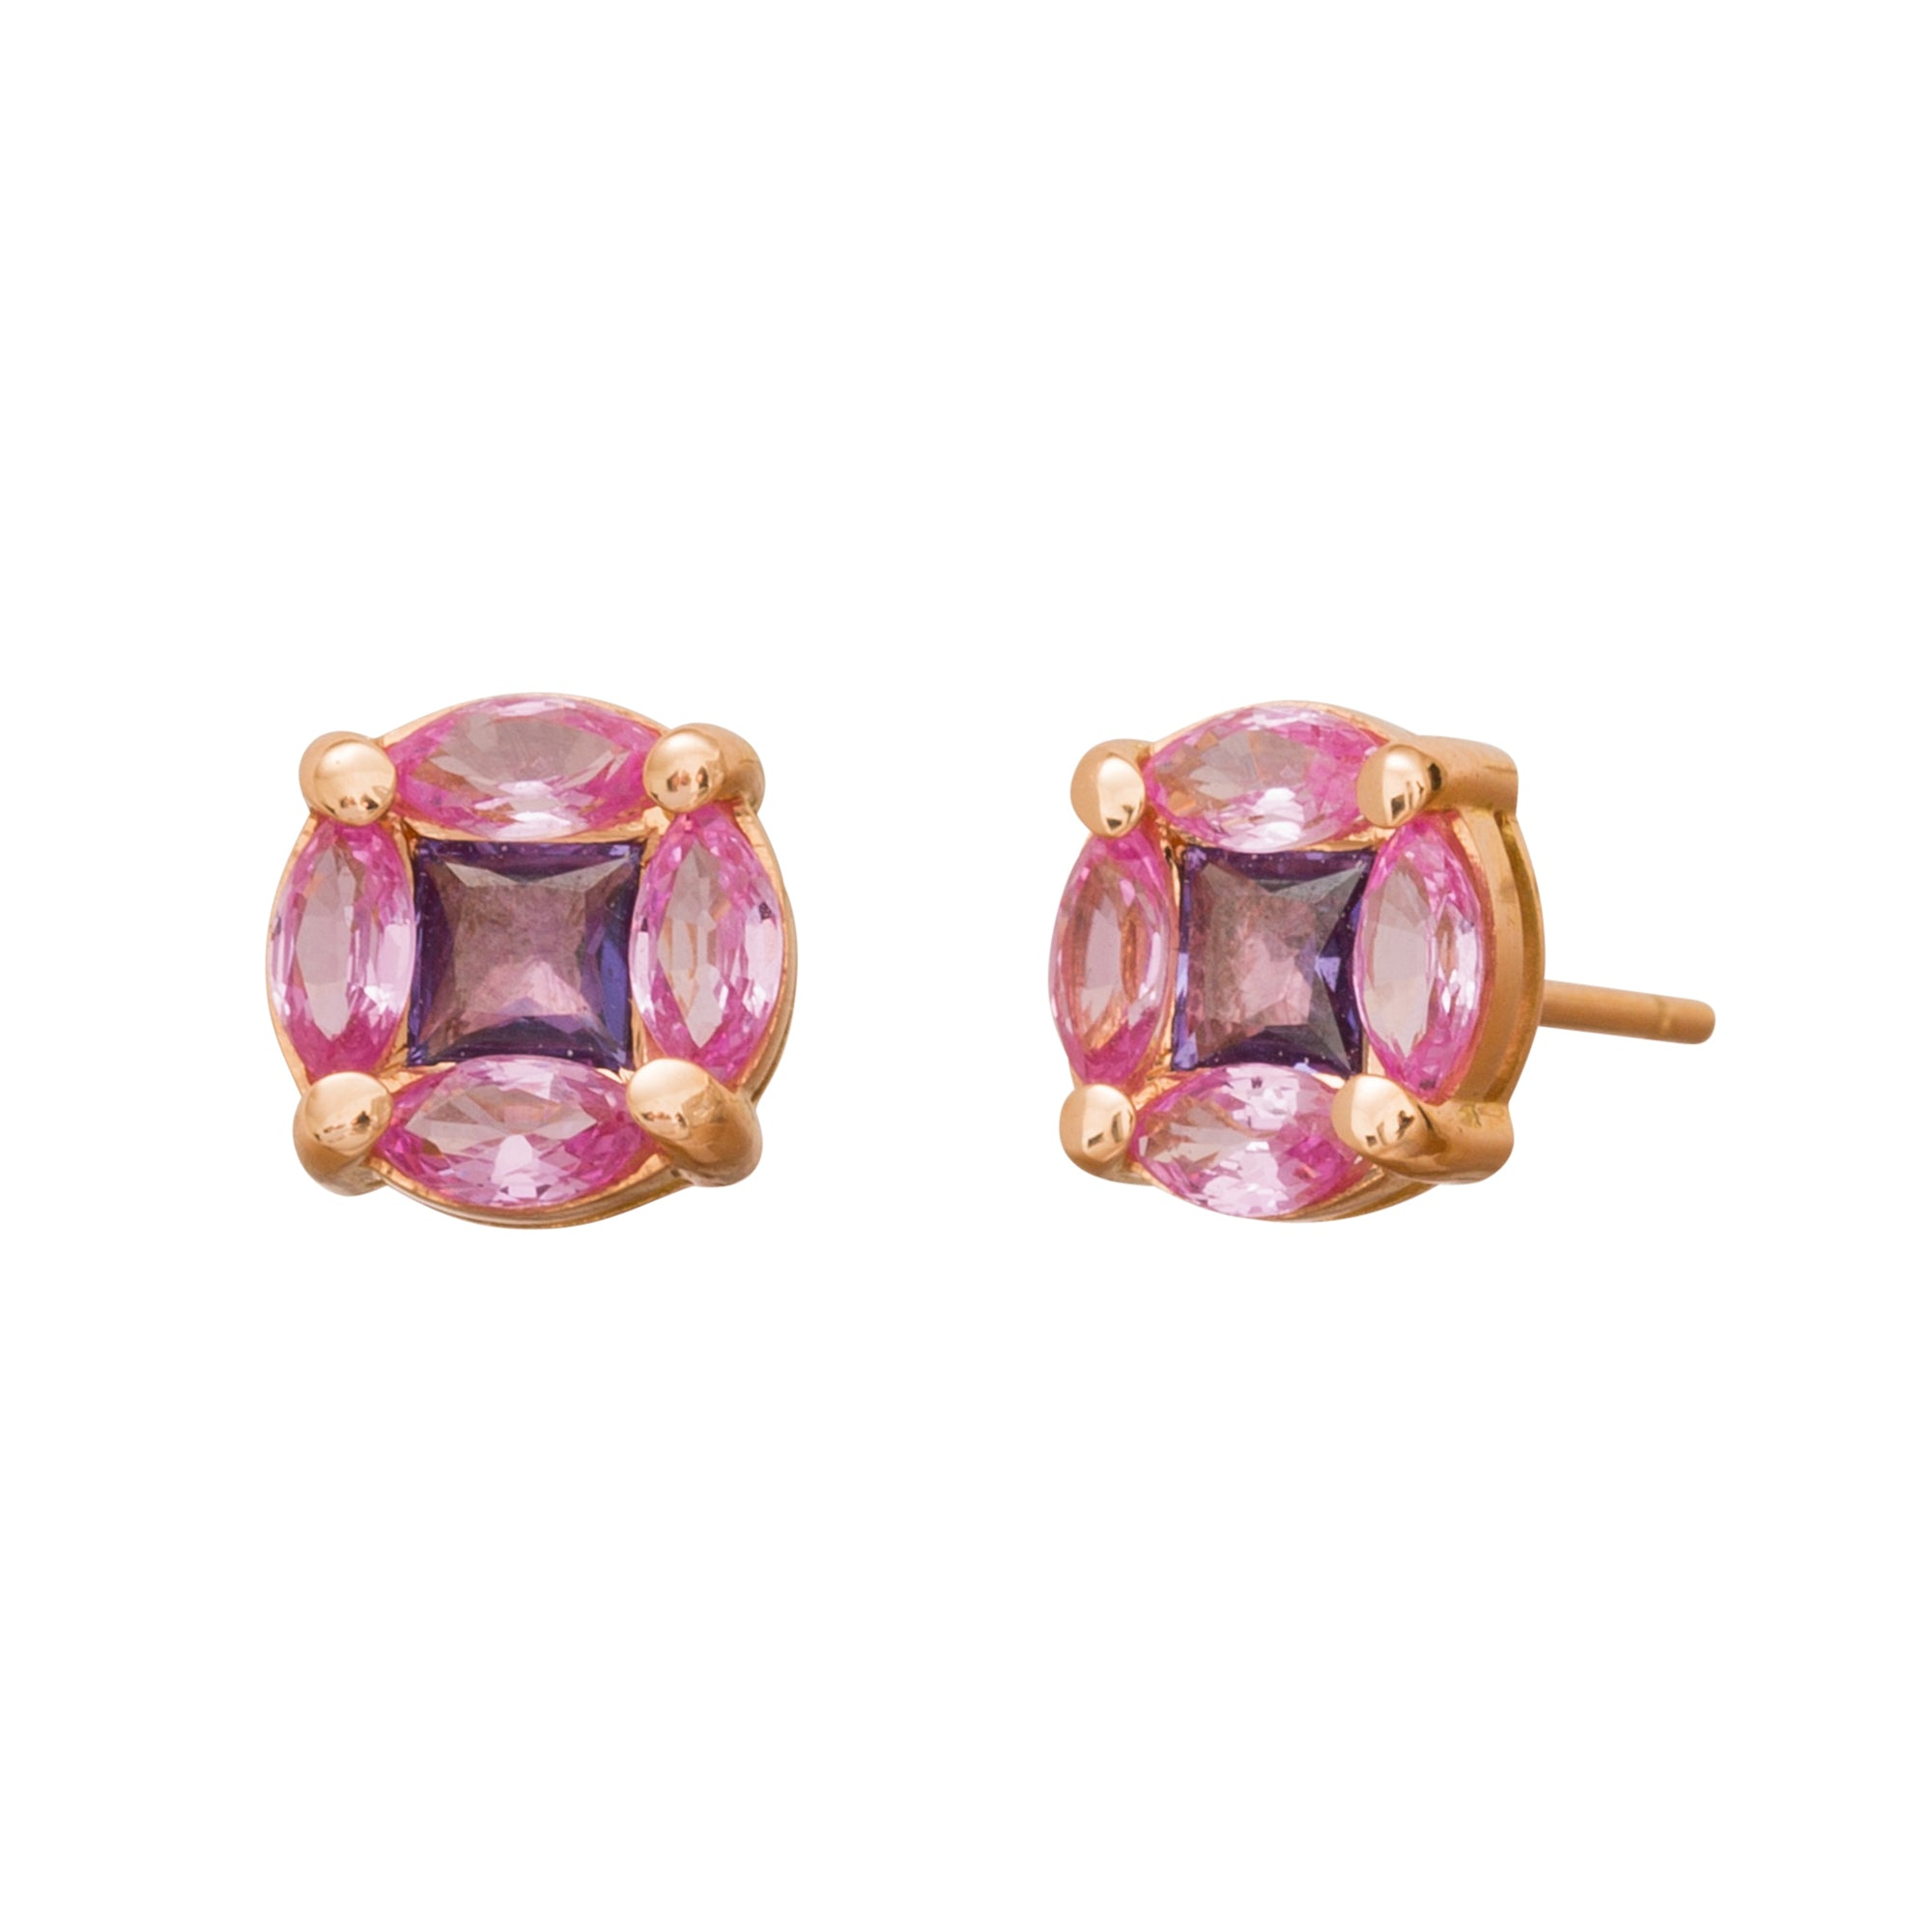 GeoArt Puzzle Stud Earrings by Kavant & Sharart for Broken English Jewelry